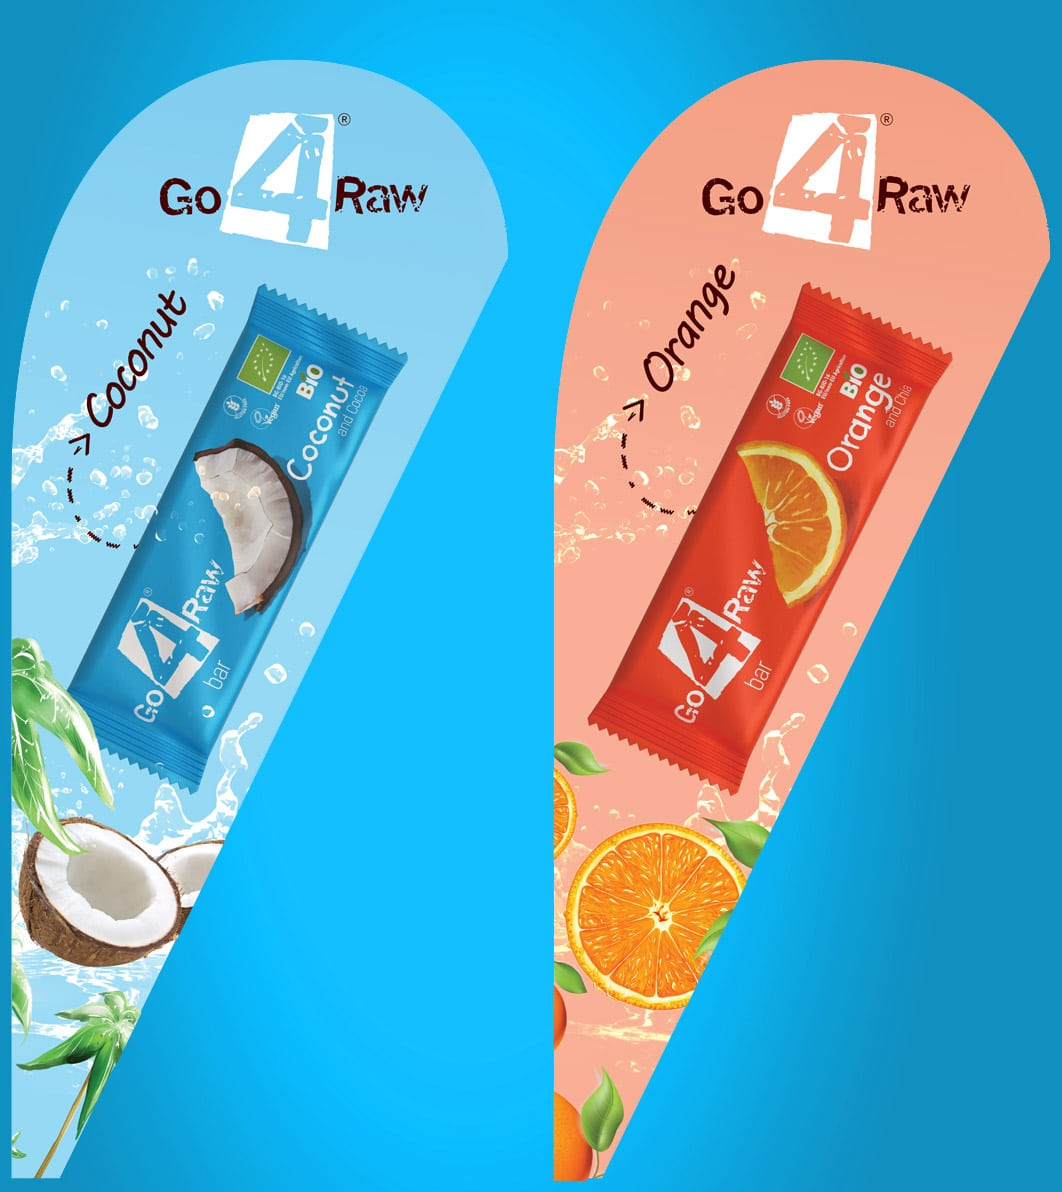 go4raw advertising flags design by AdwayCreative